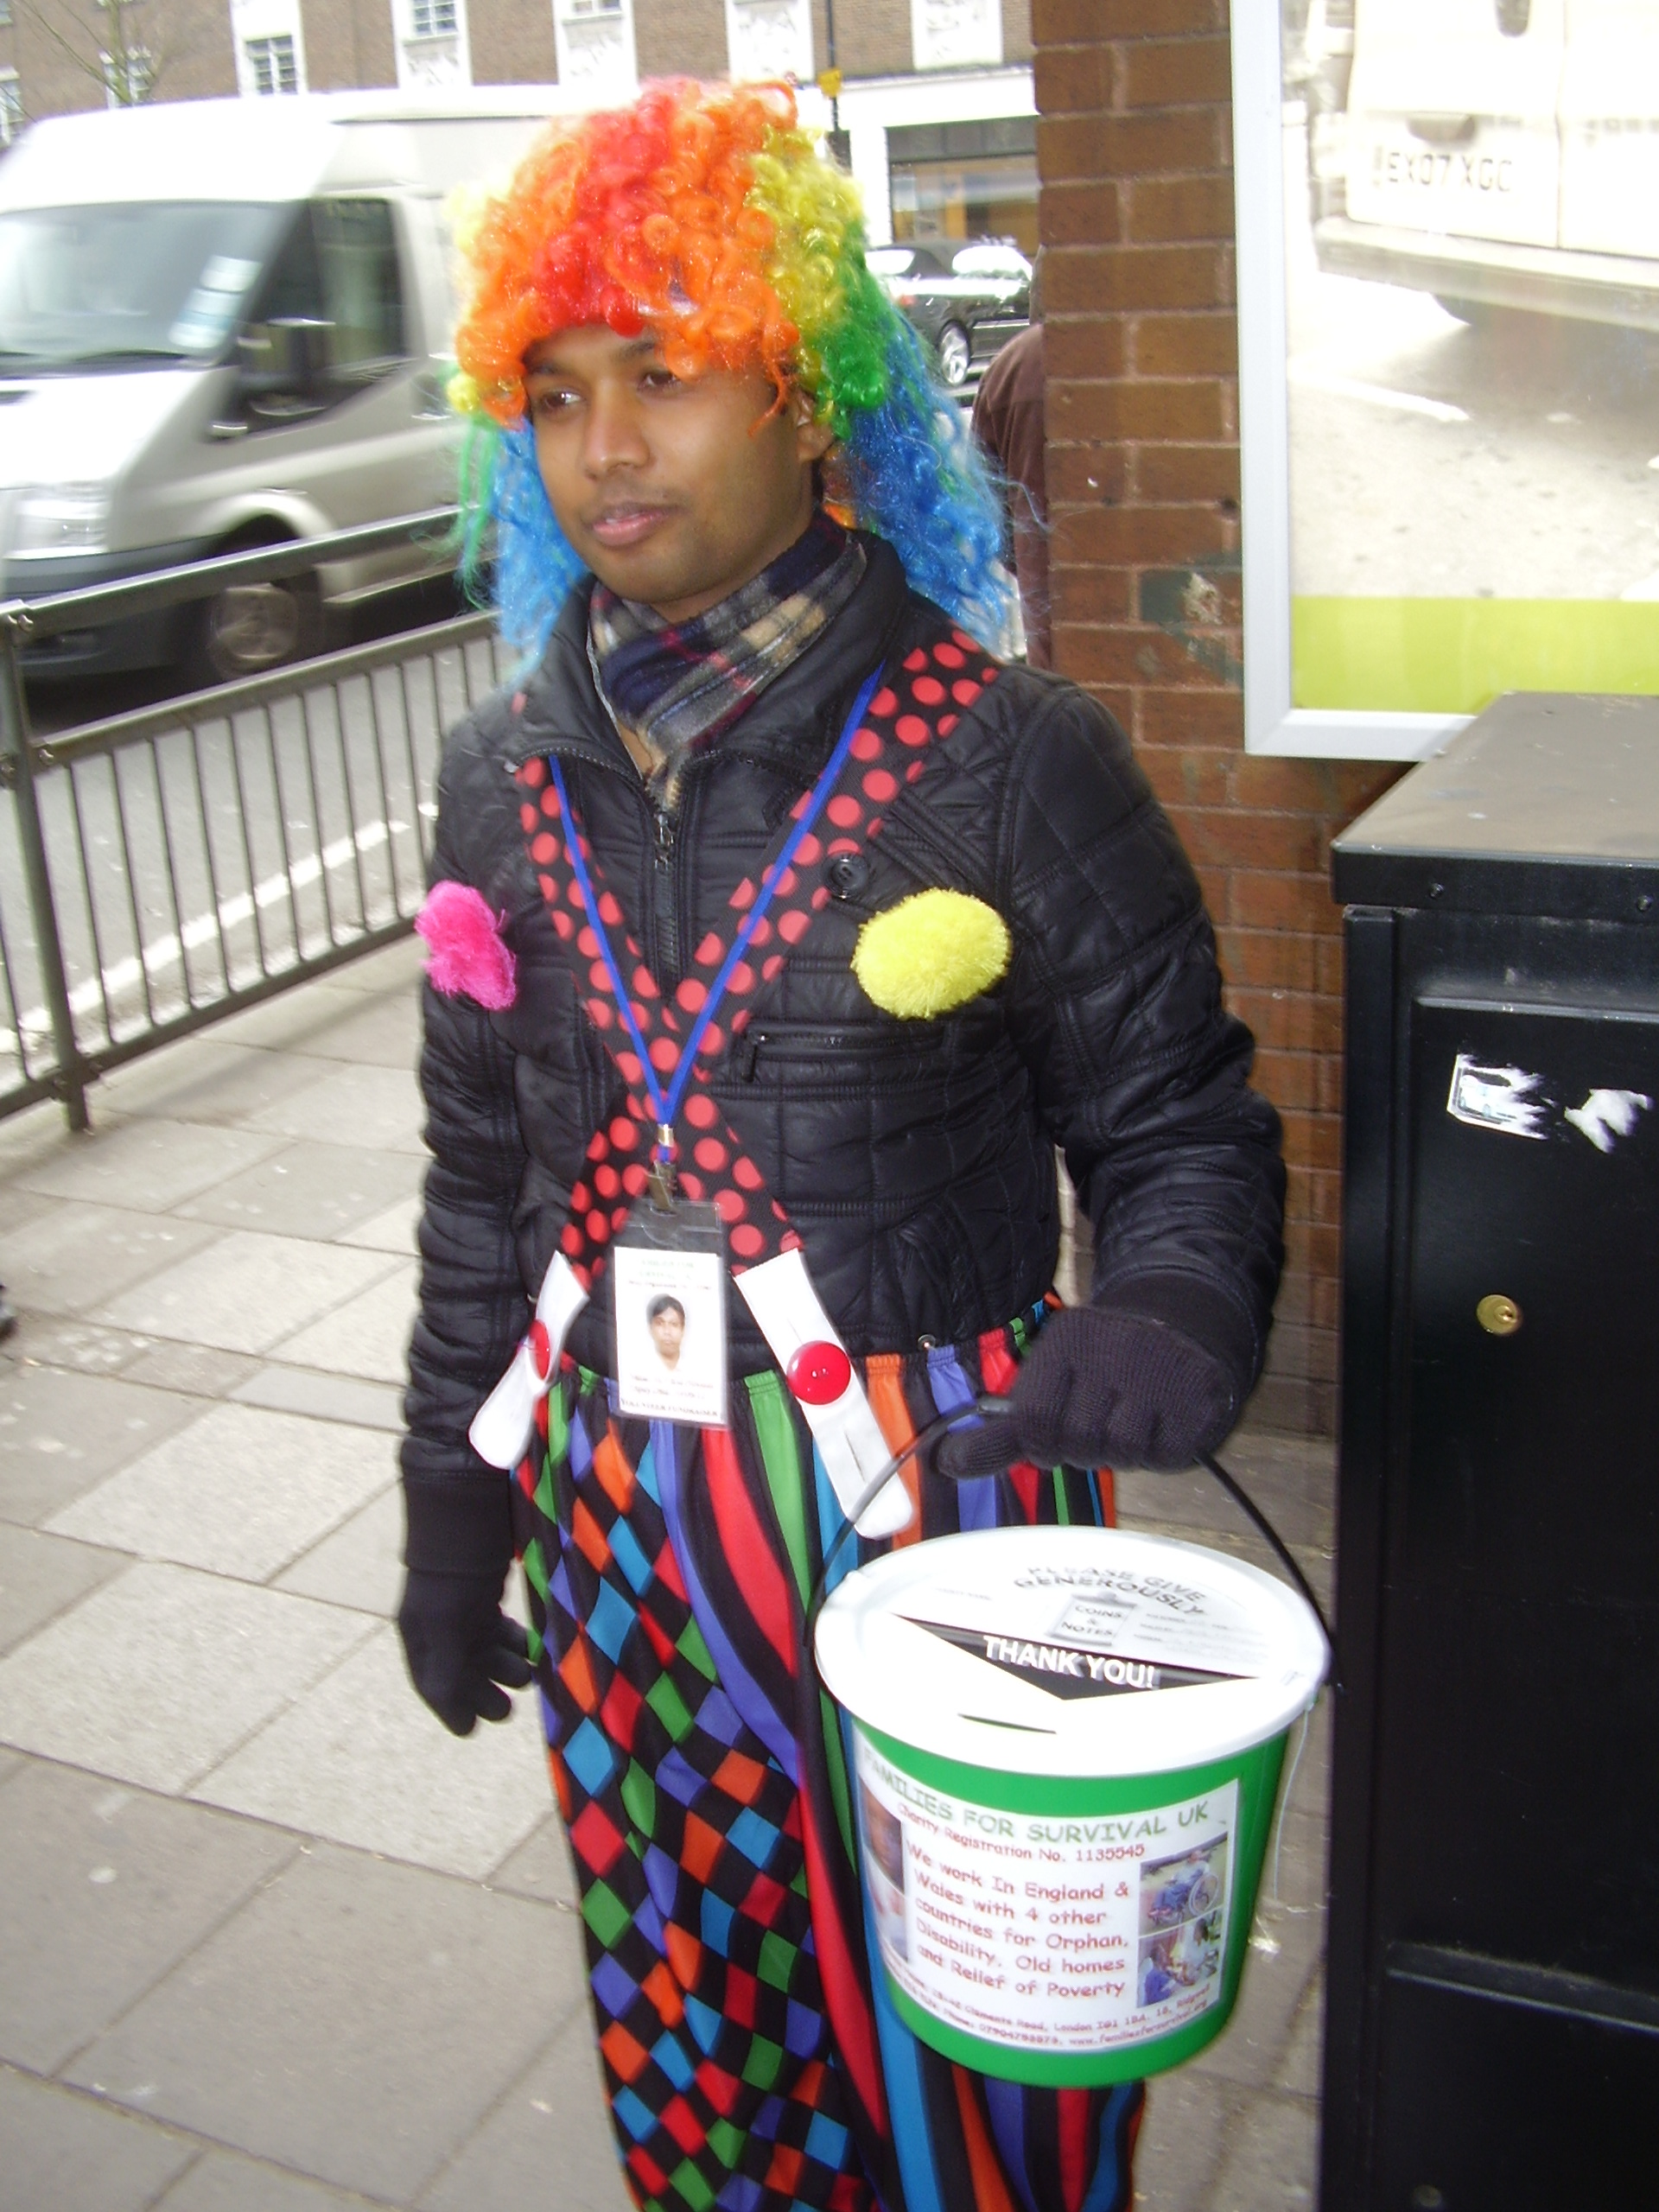 photo of a man with a charity collecting bucket dressed in clown or harlequin outfit